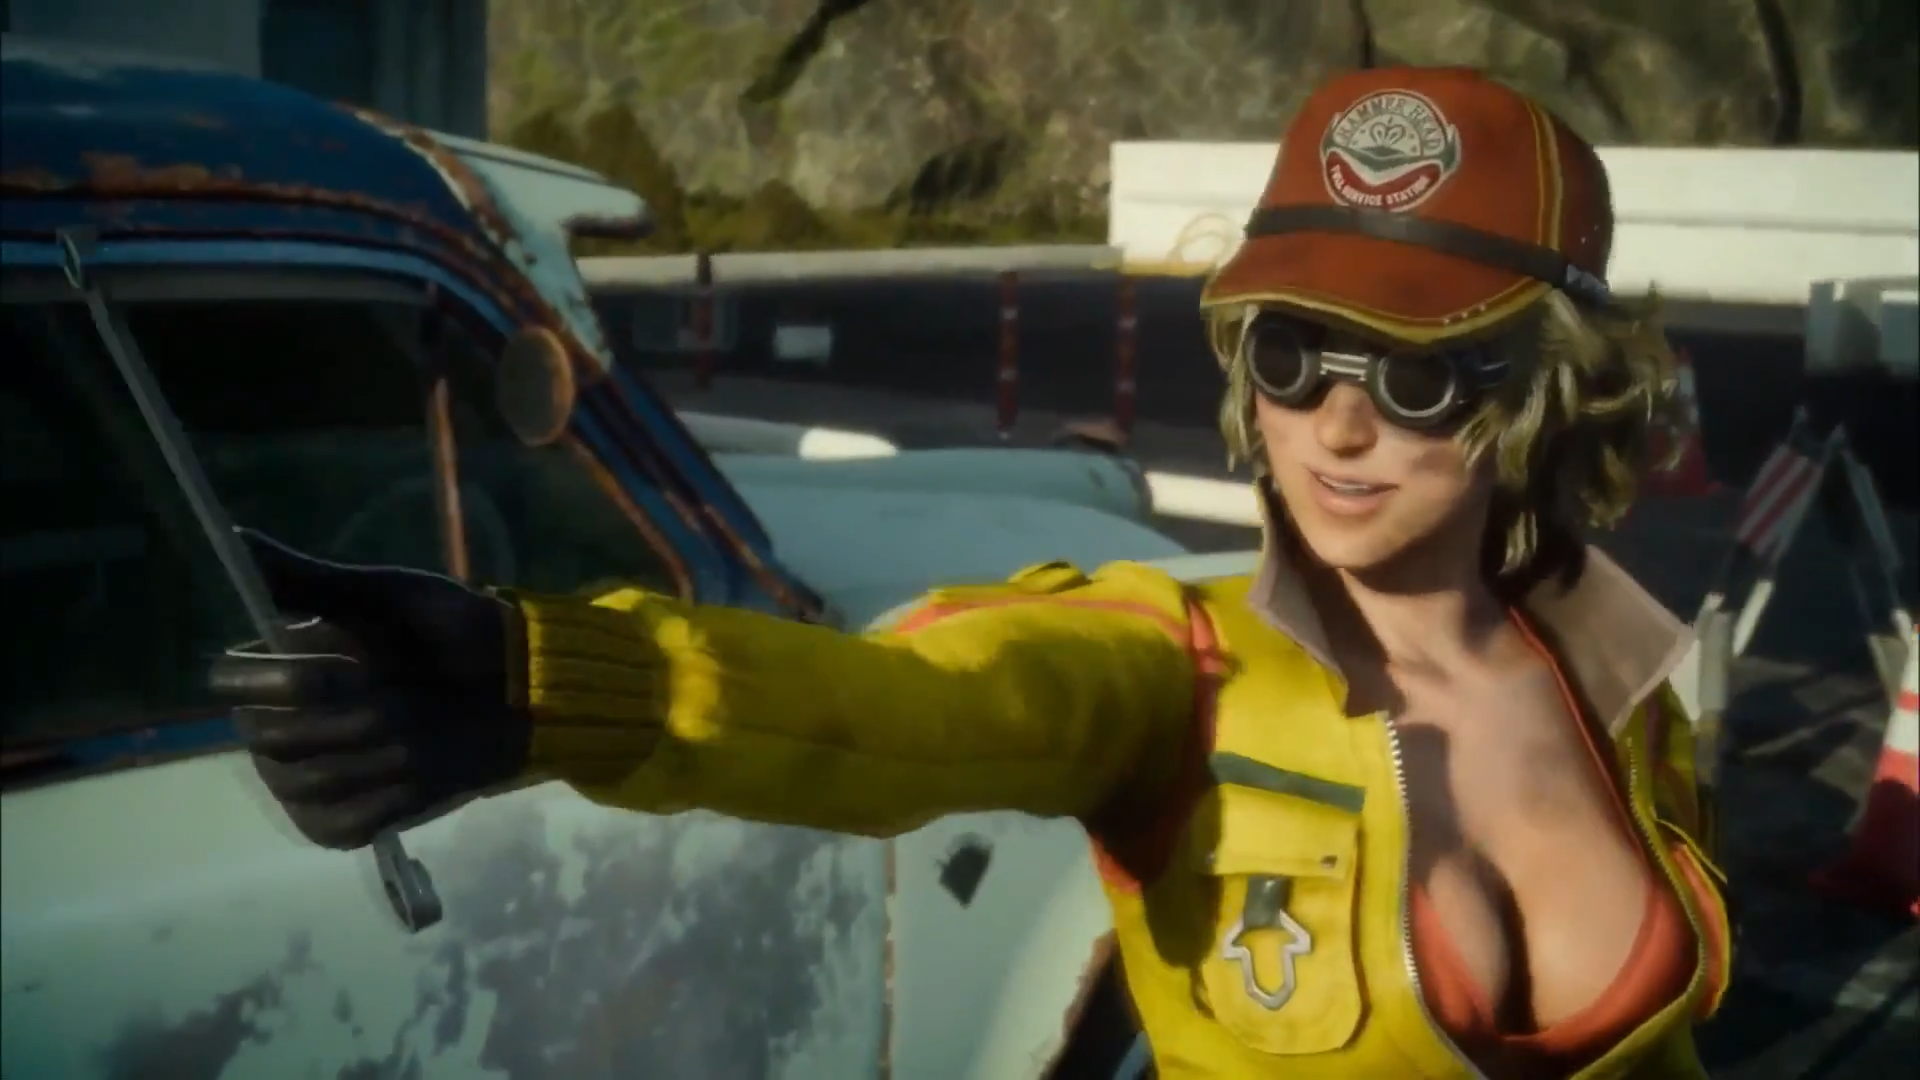 Cindy Final Fantasy XV